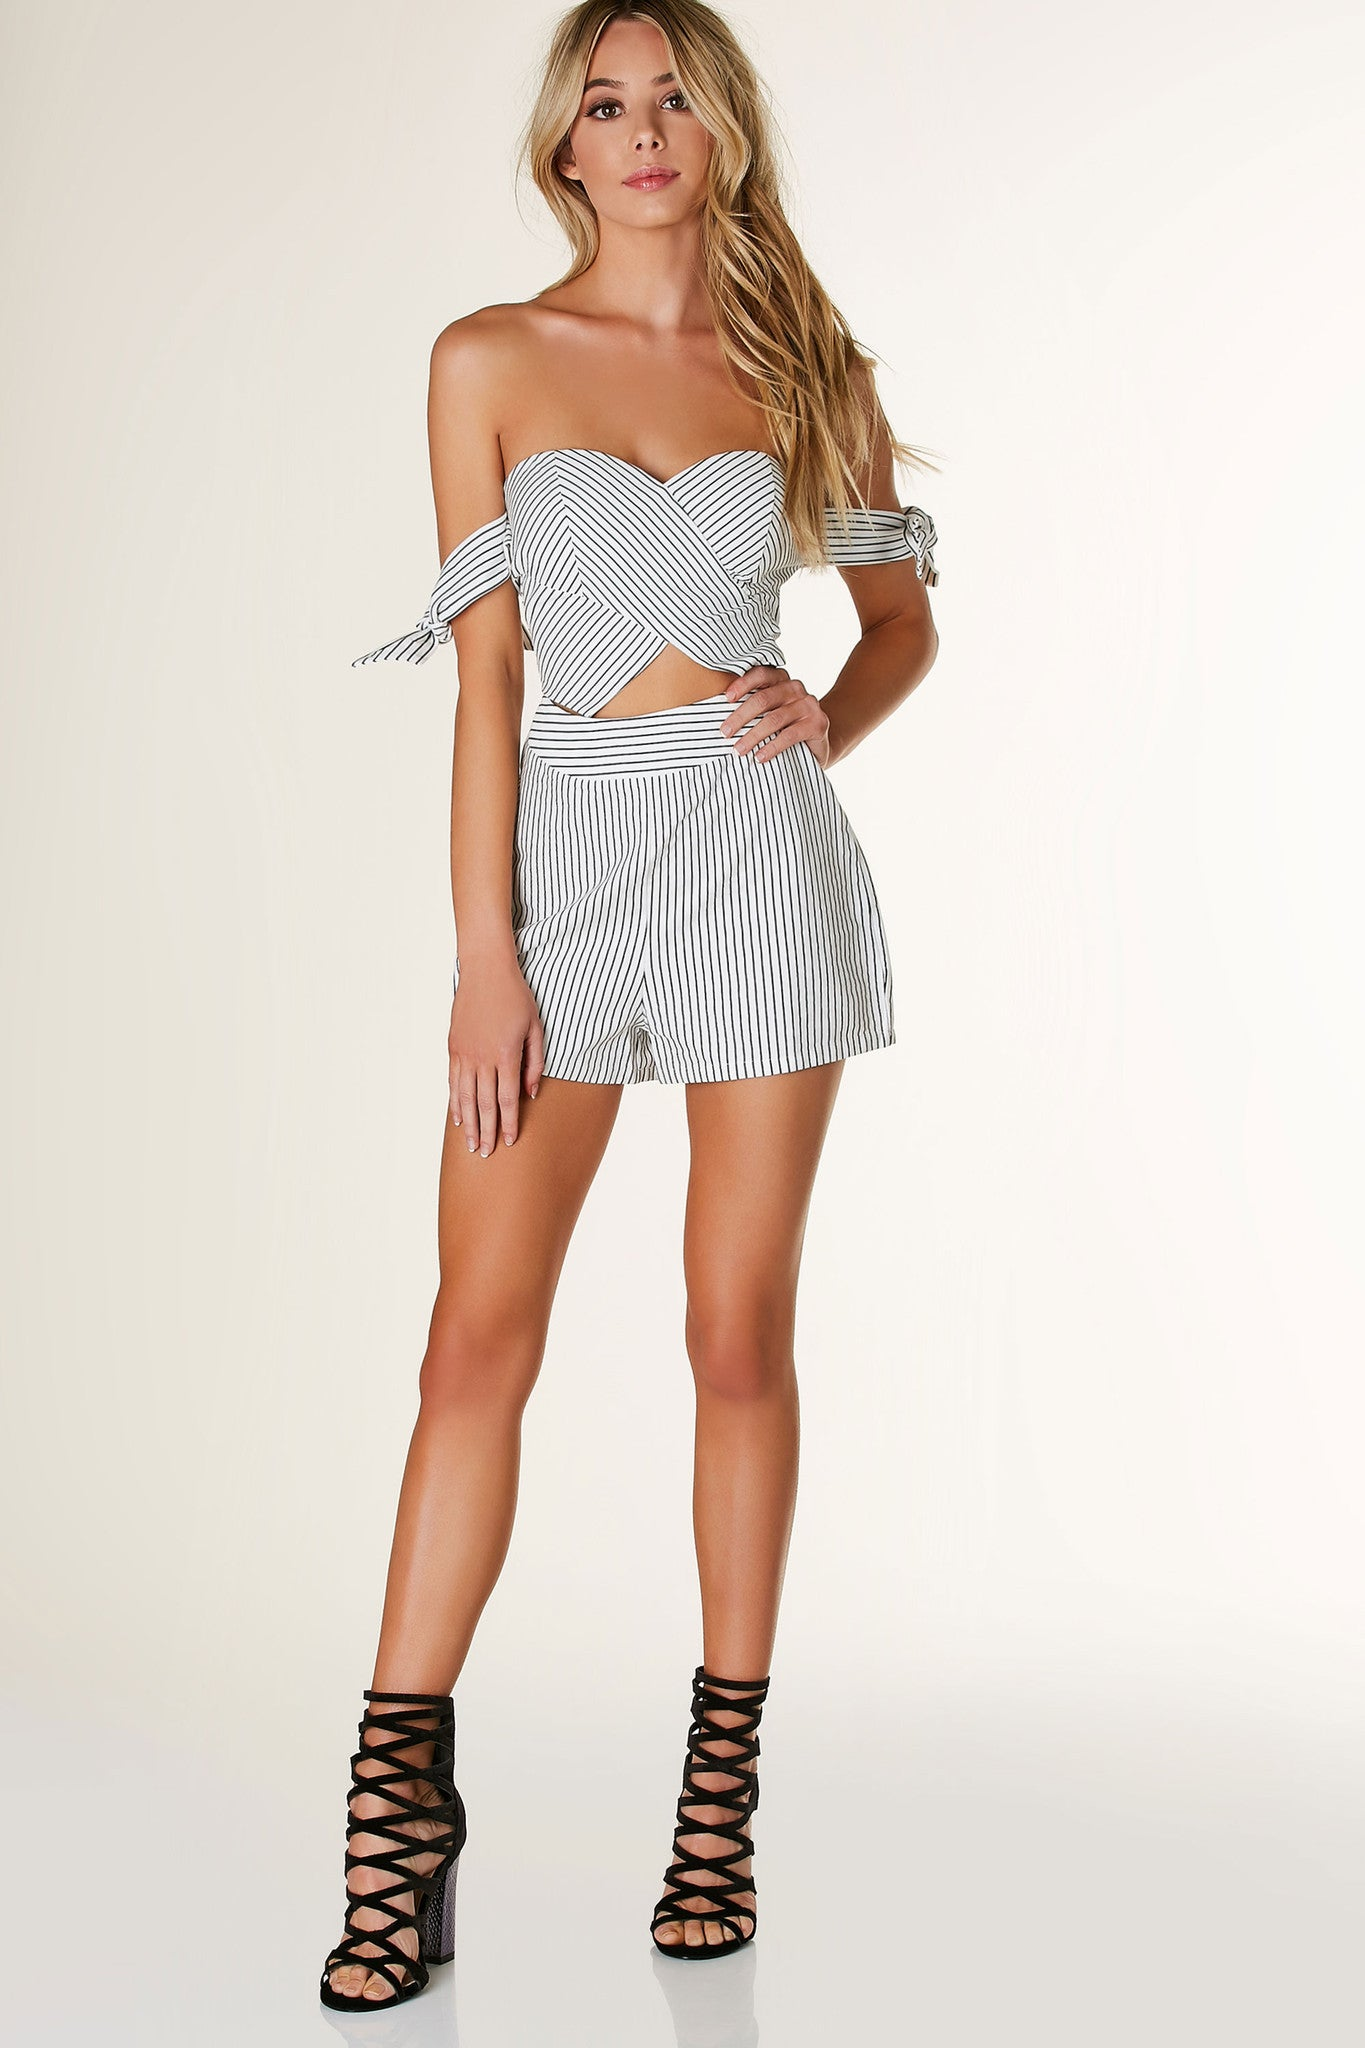 Flirty sweetheart neckline romper with tie up sleeves and center cut out. Pinstripe patterns throughout with back zip closure.